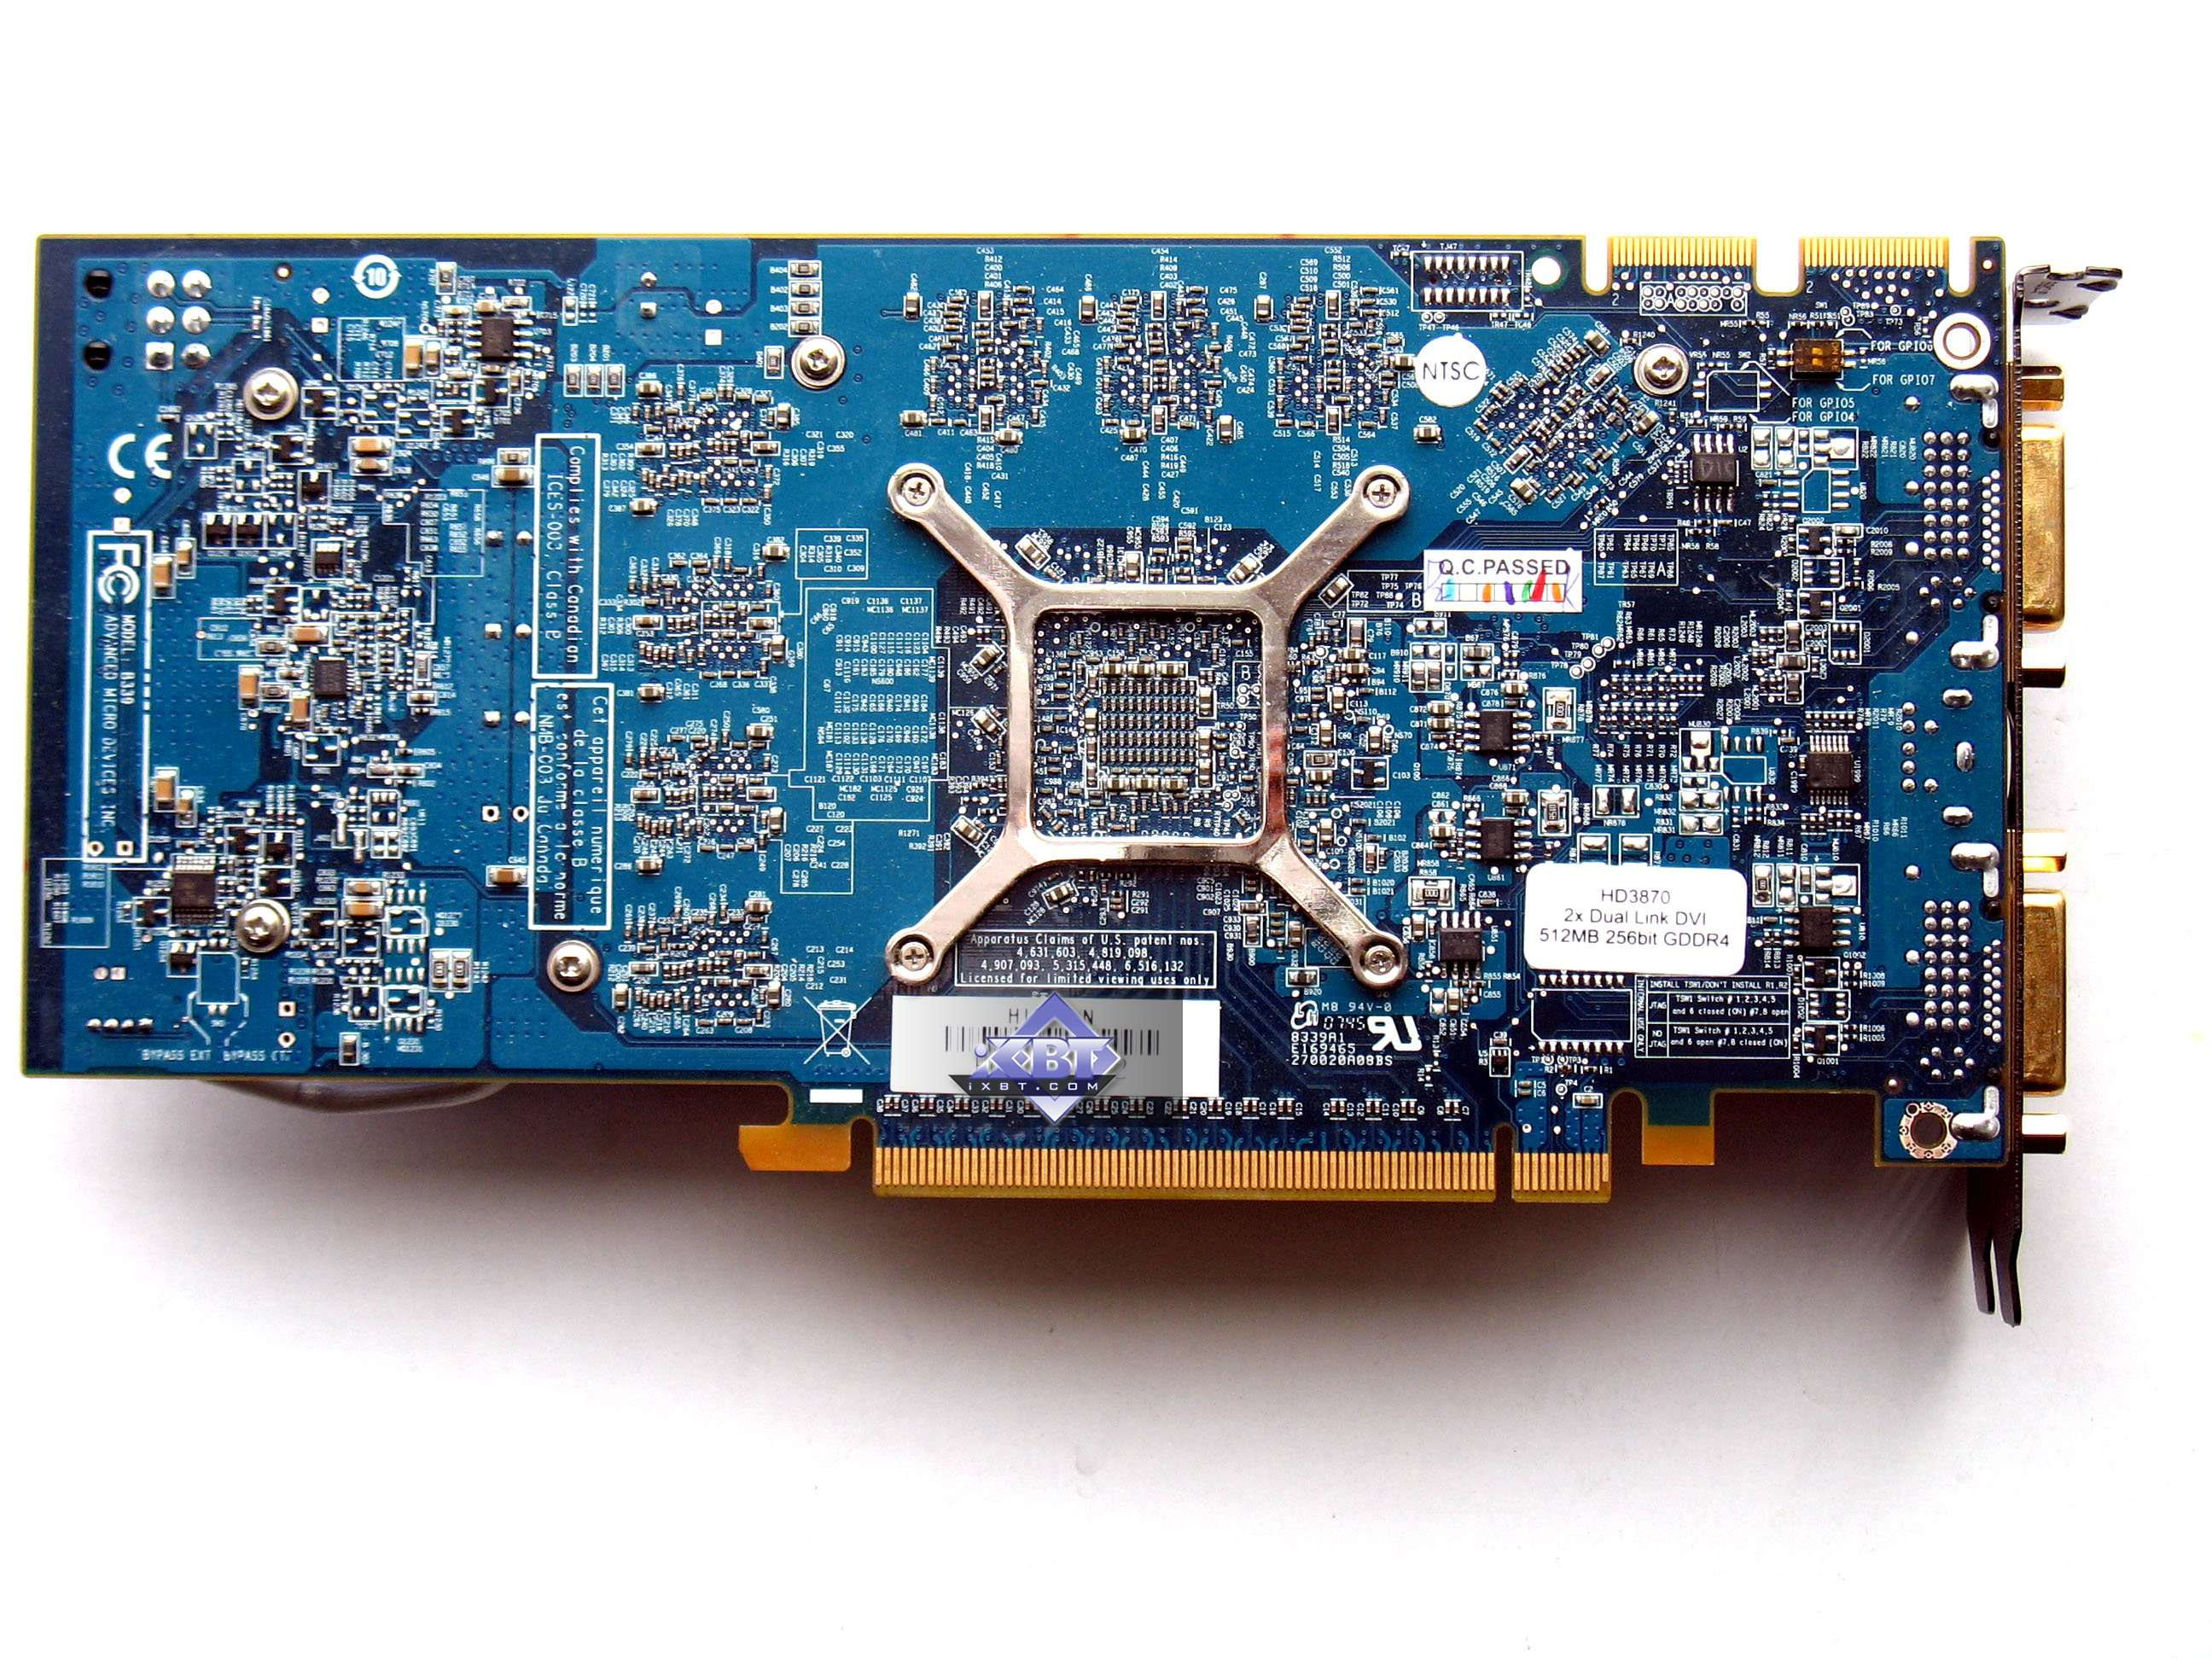 His ati radeon hd 3870